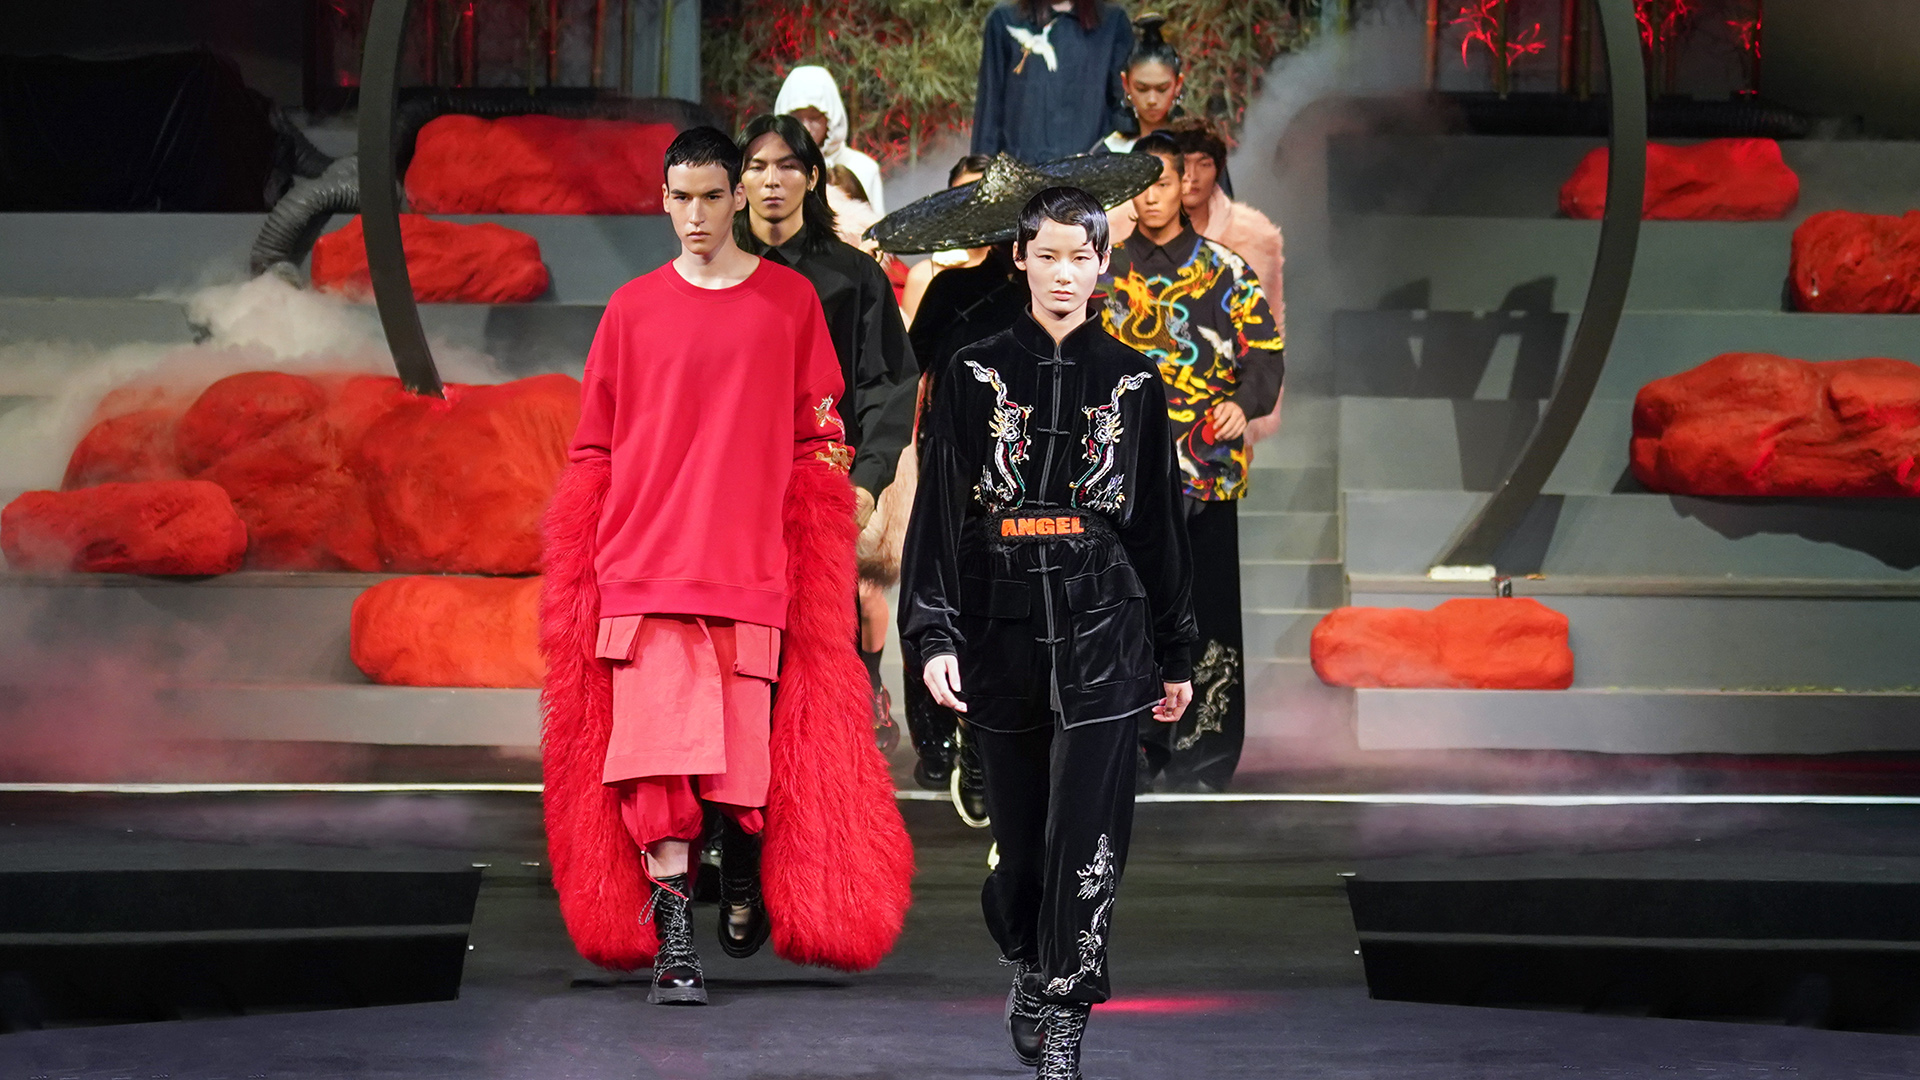 Angel Chen S Loud Free Spirited Fashion Garners Global Recognition